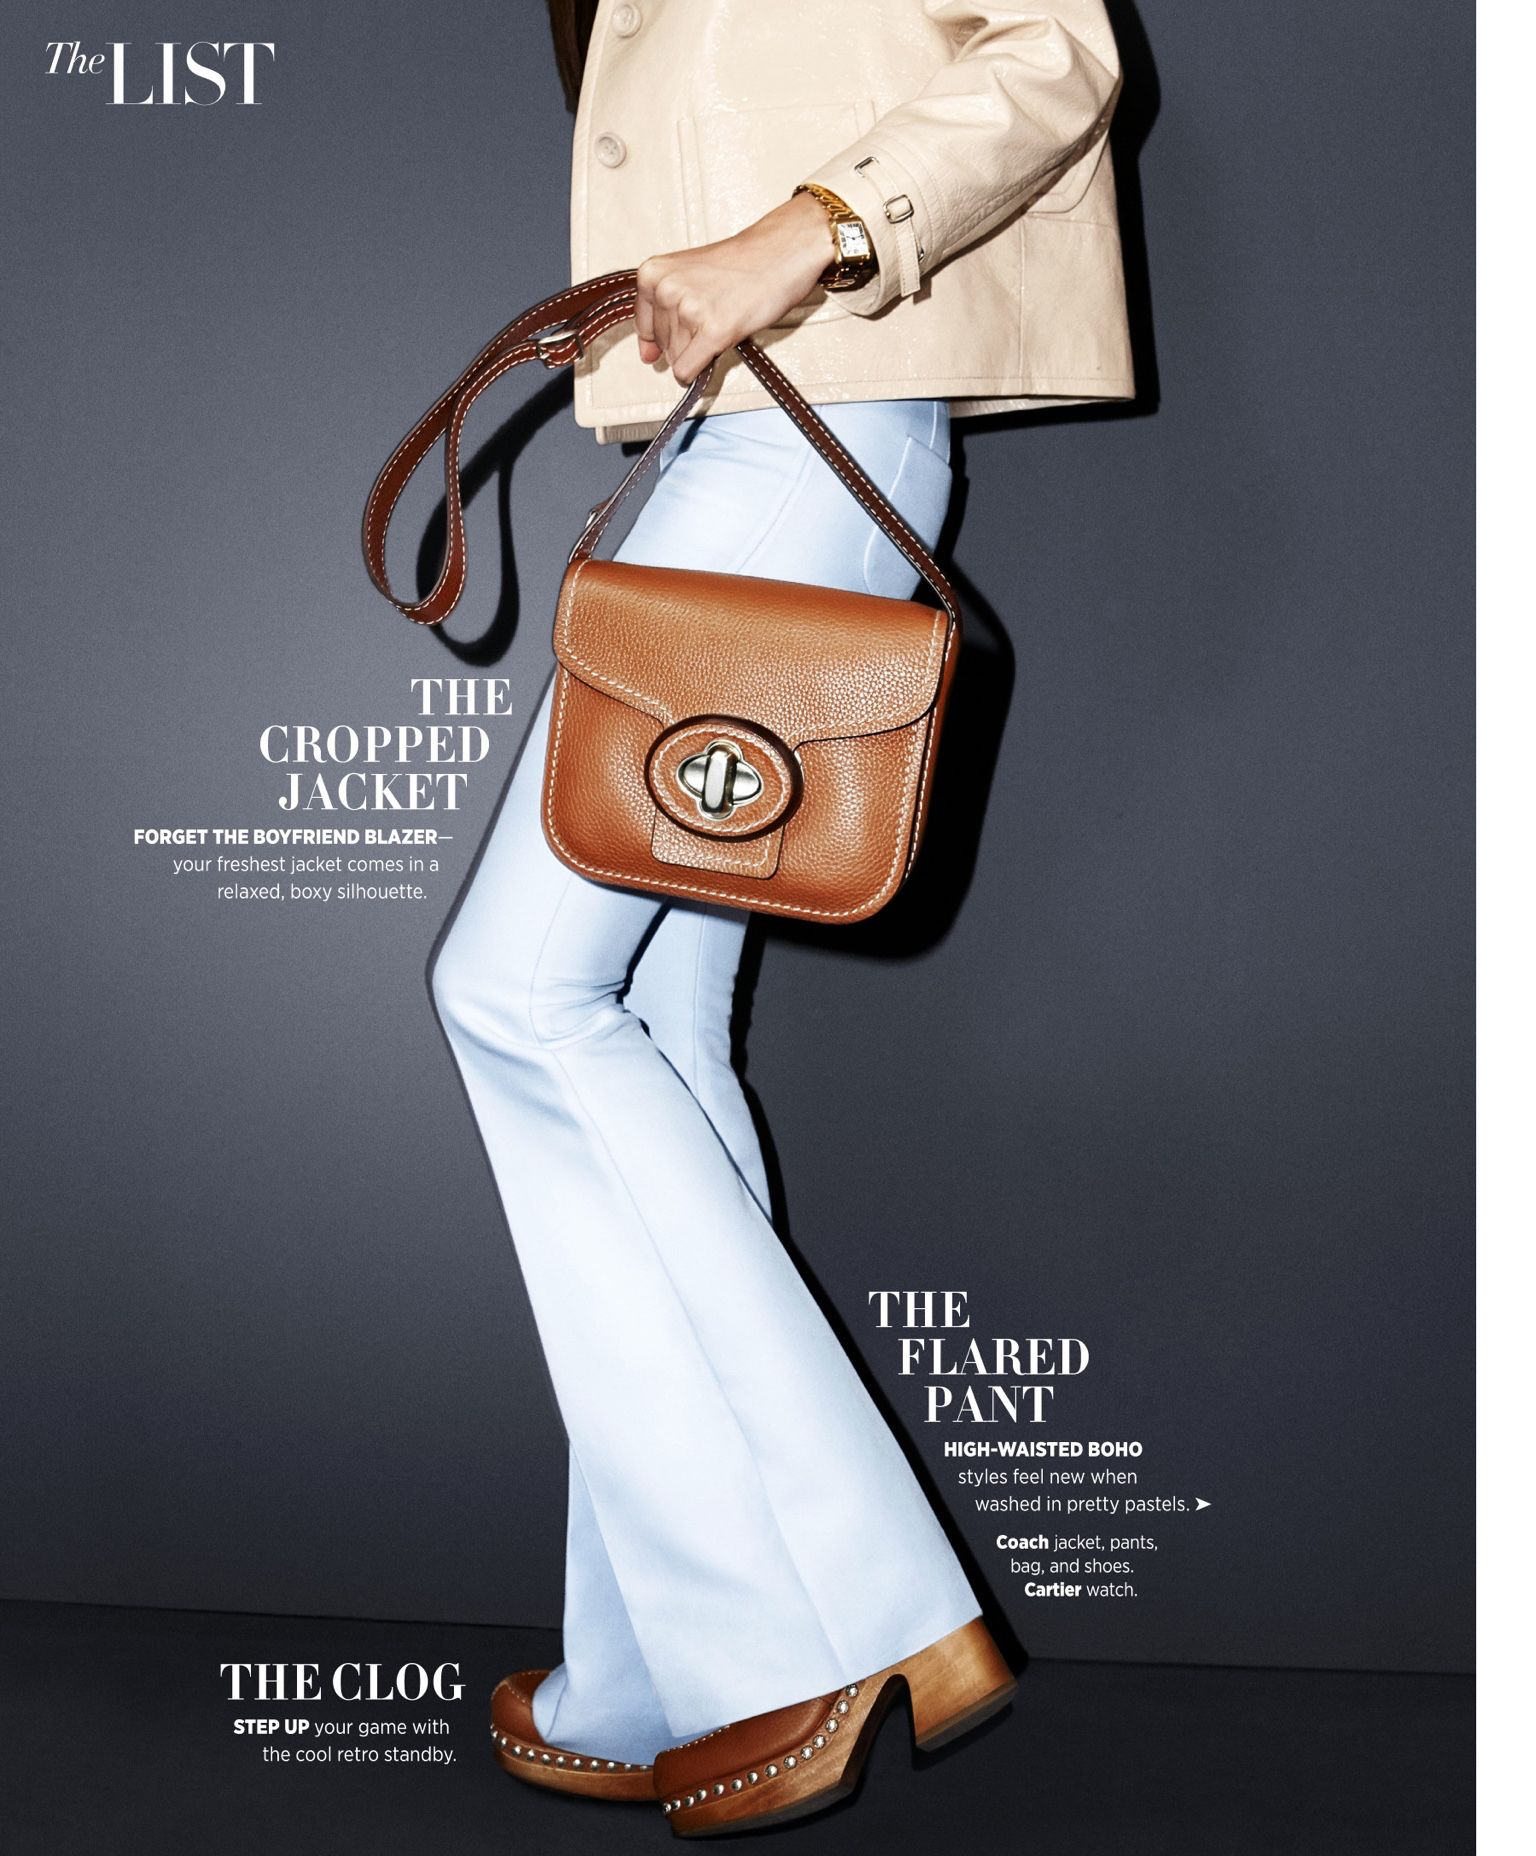 I saw this in the March 2015 issue of Harper's BAZAAR.   http://bit.ly/1qg6jOO